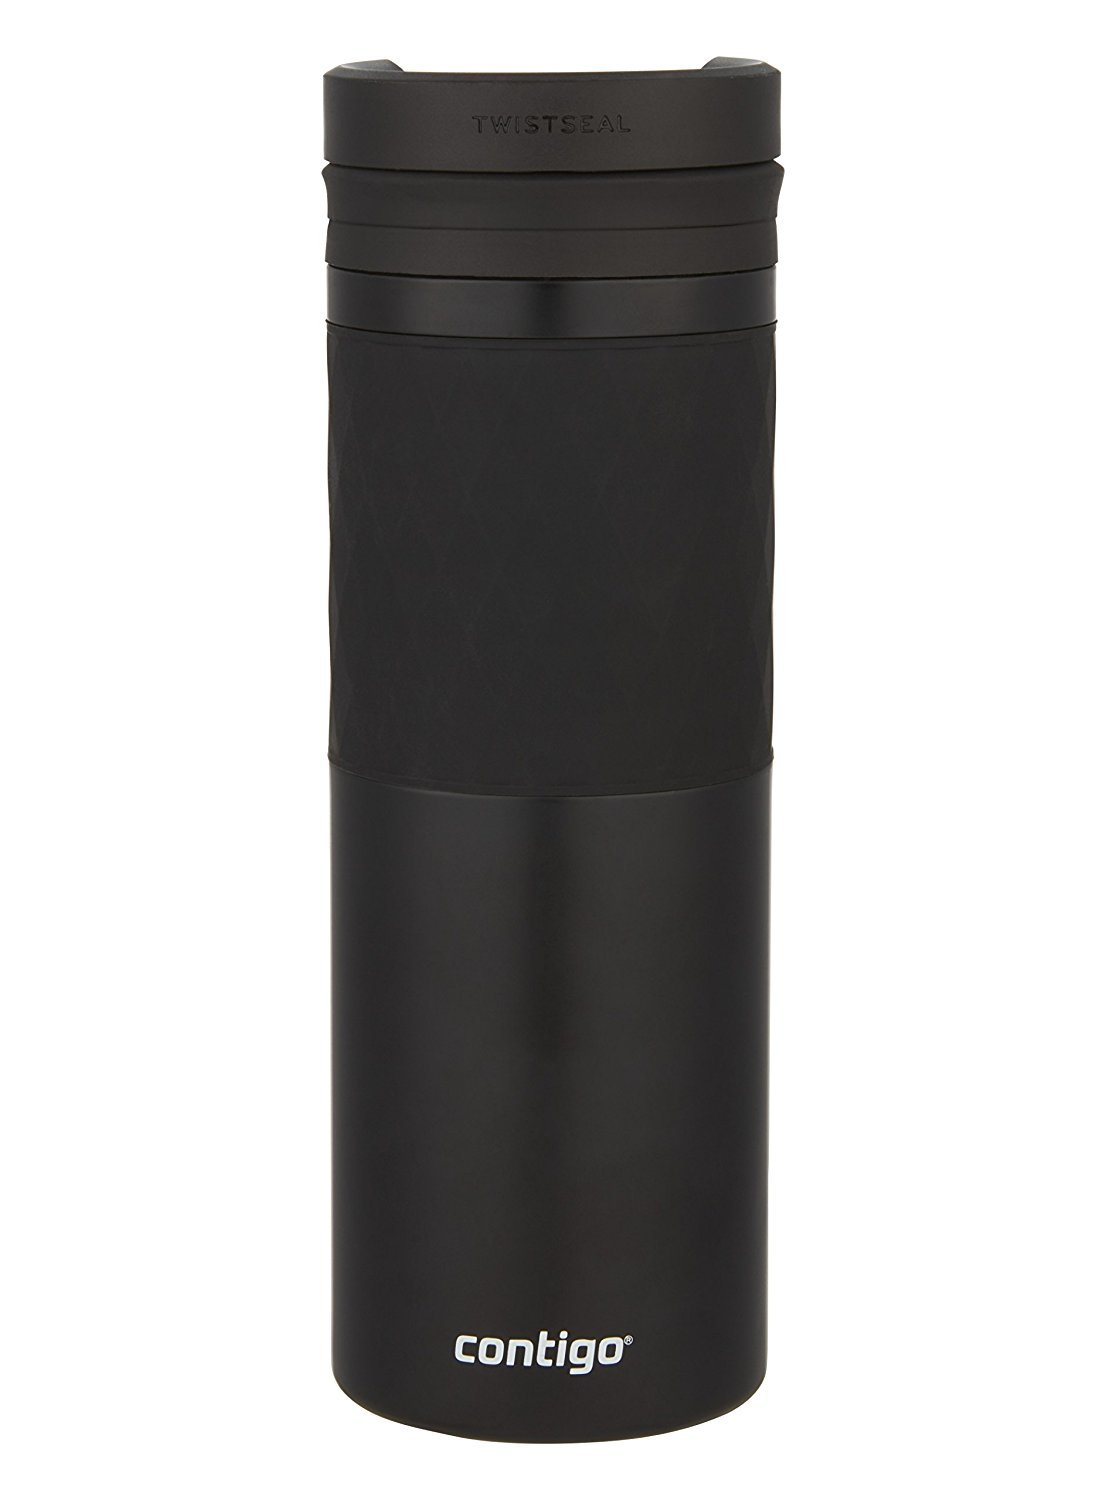 Contigo TWISTSEAL Glaze Vacuum-Insulated Stainless Steel Travel Mug with Ceramic Coating, 16 oz., Matte Black